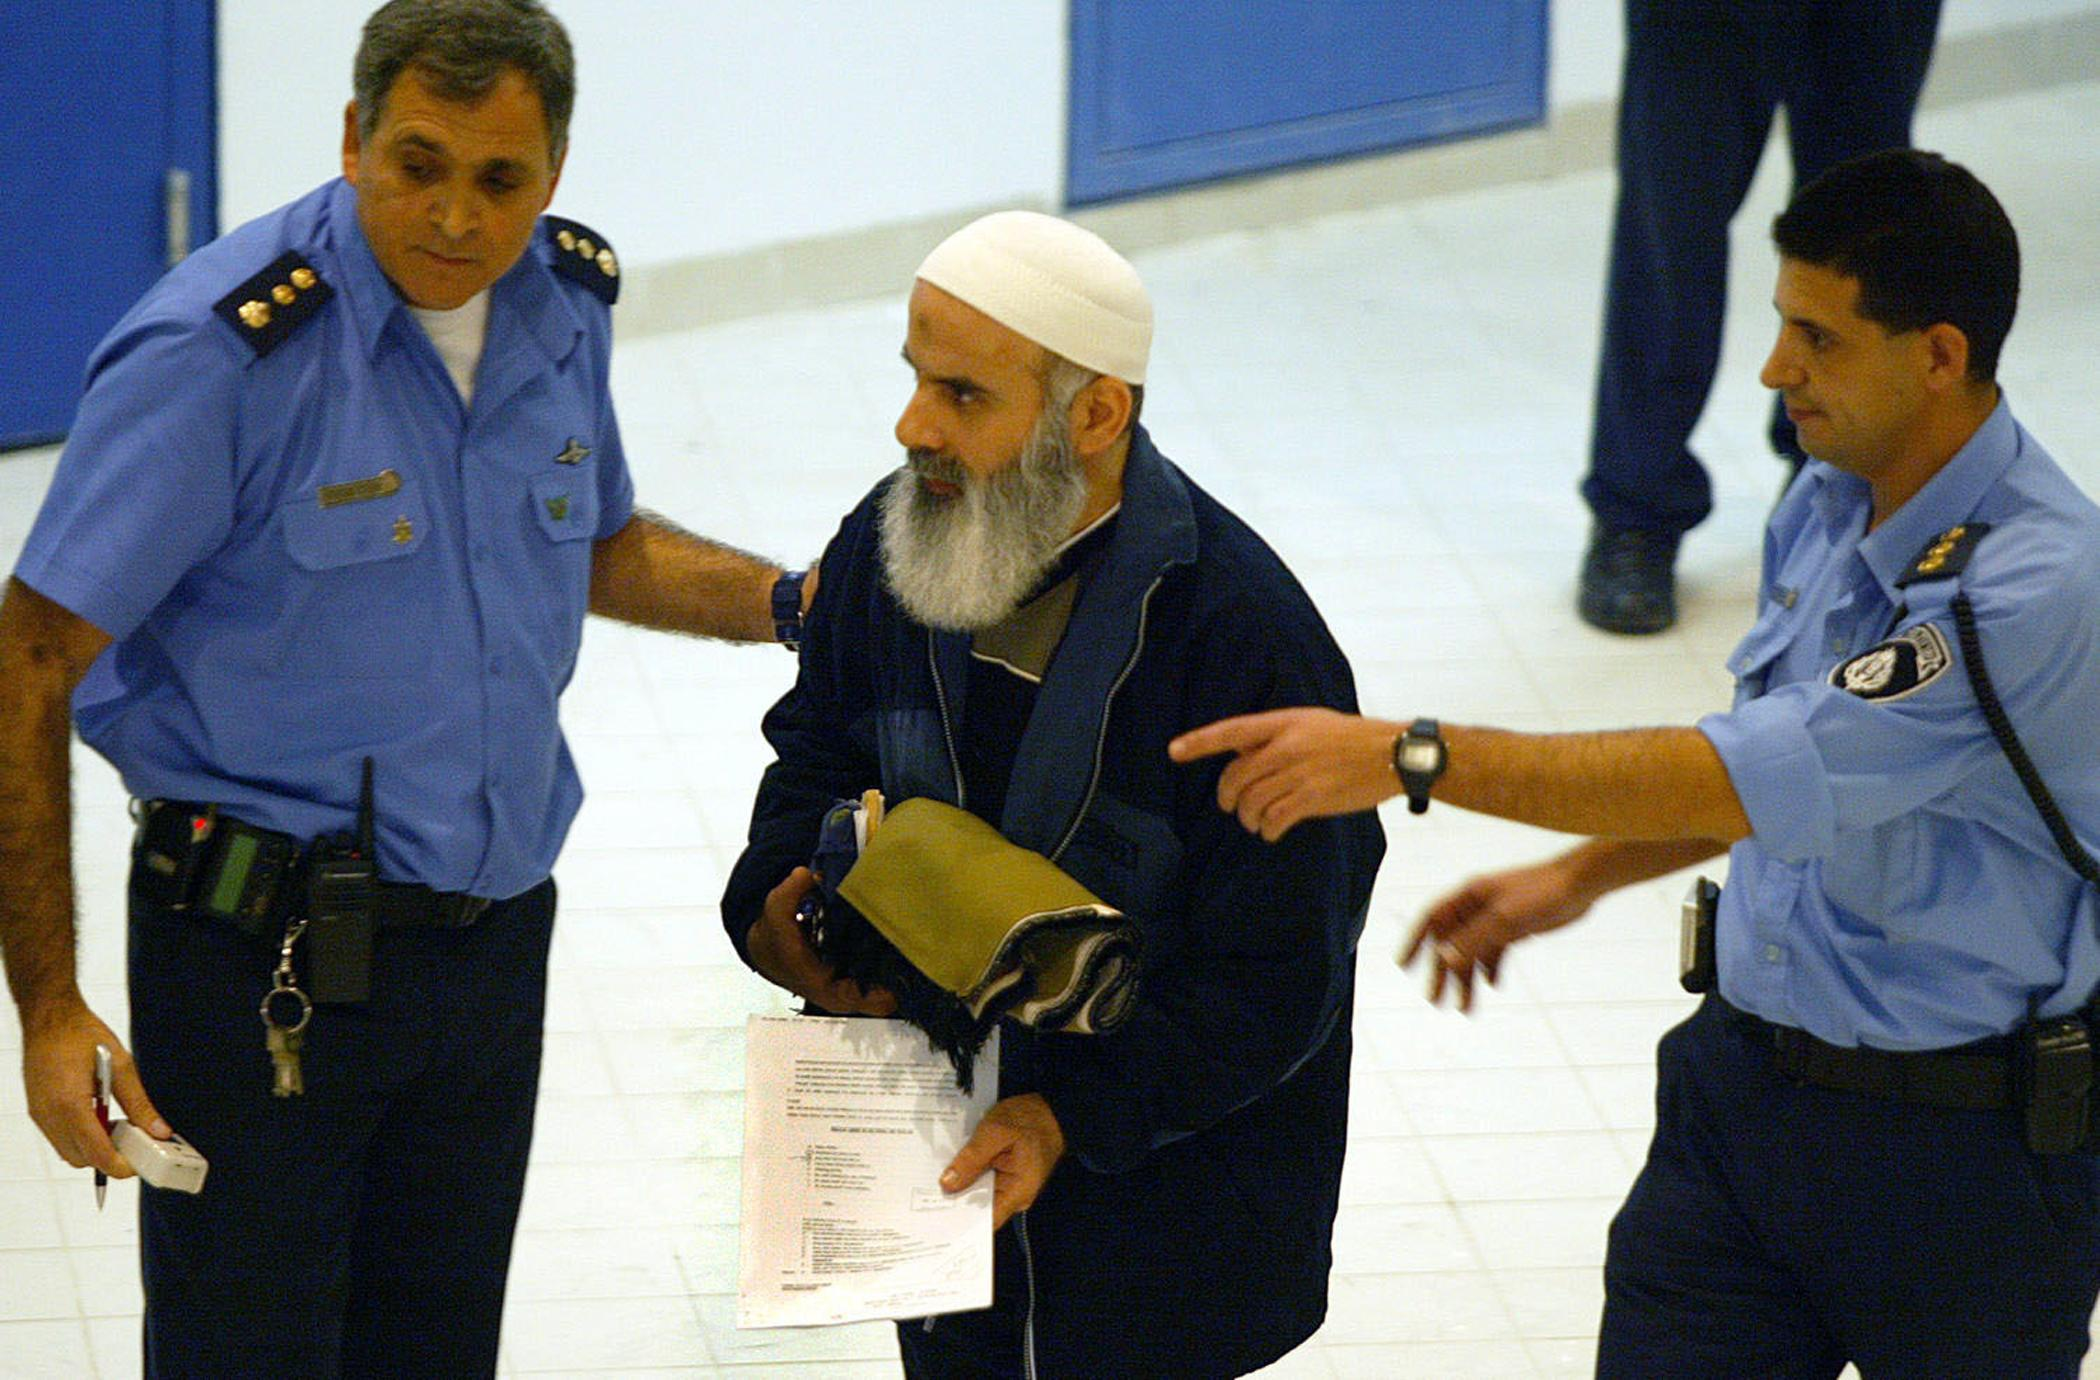 Airport security handling Muslim